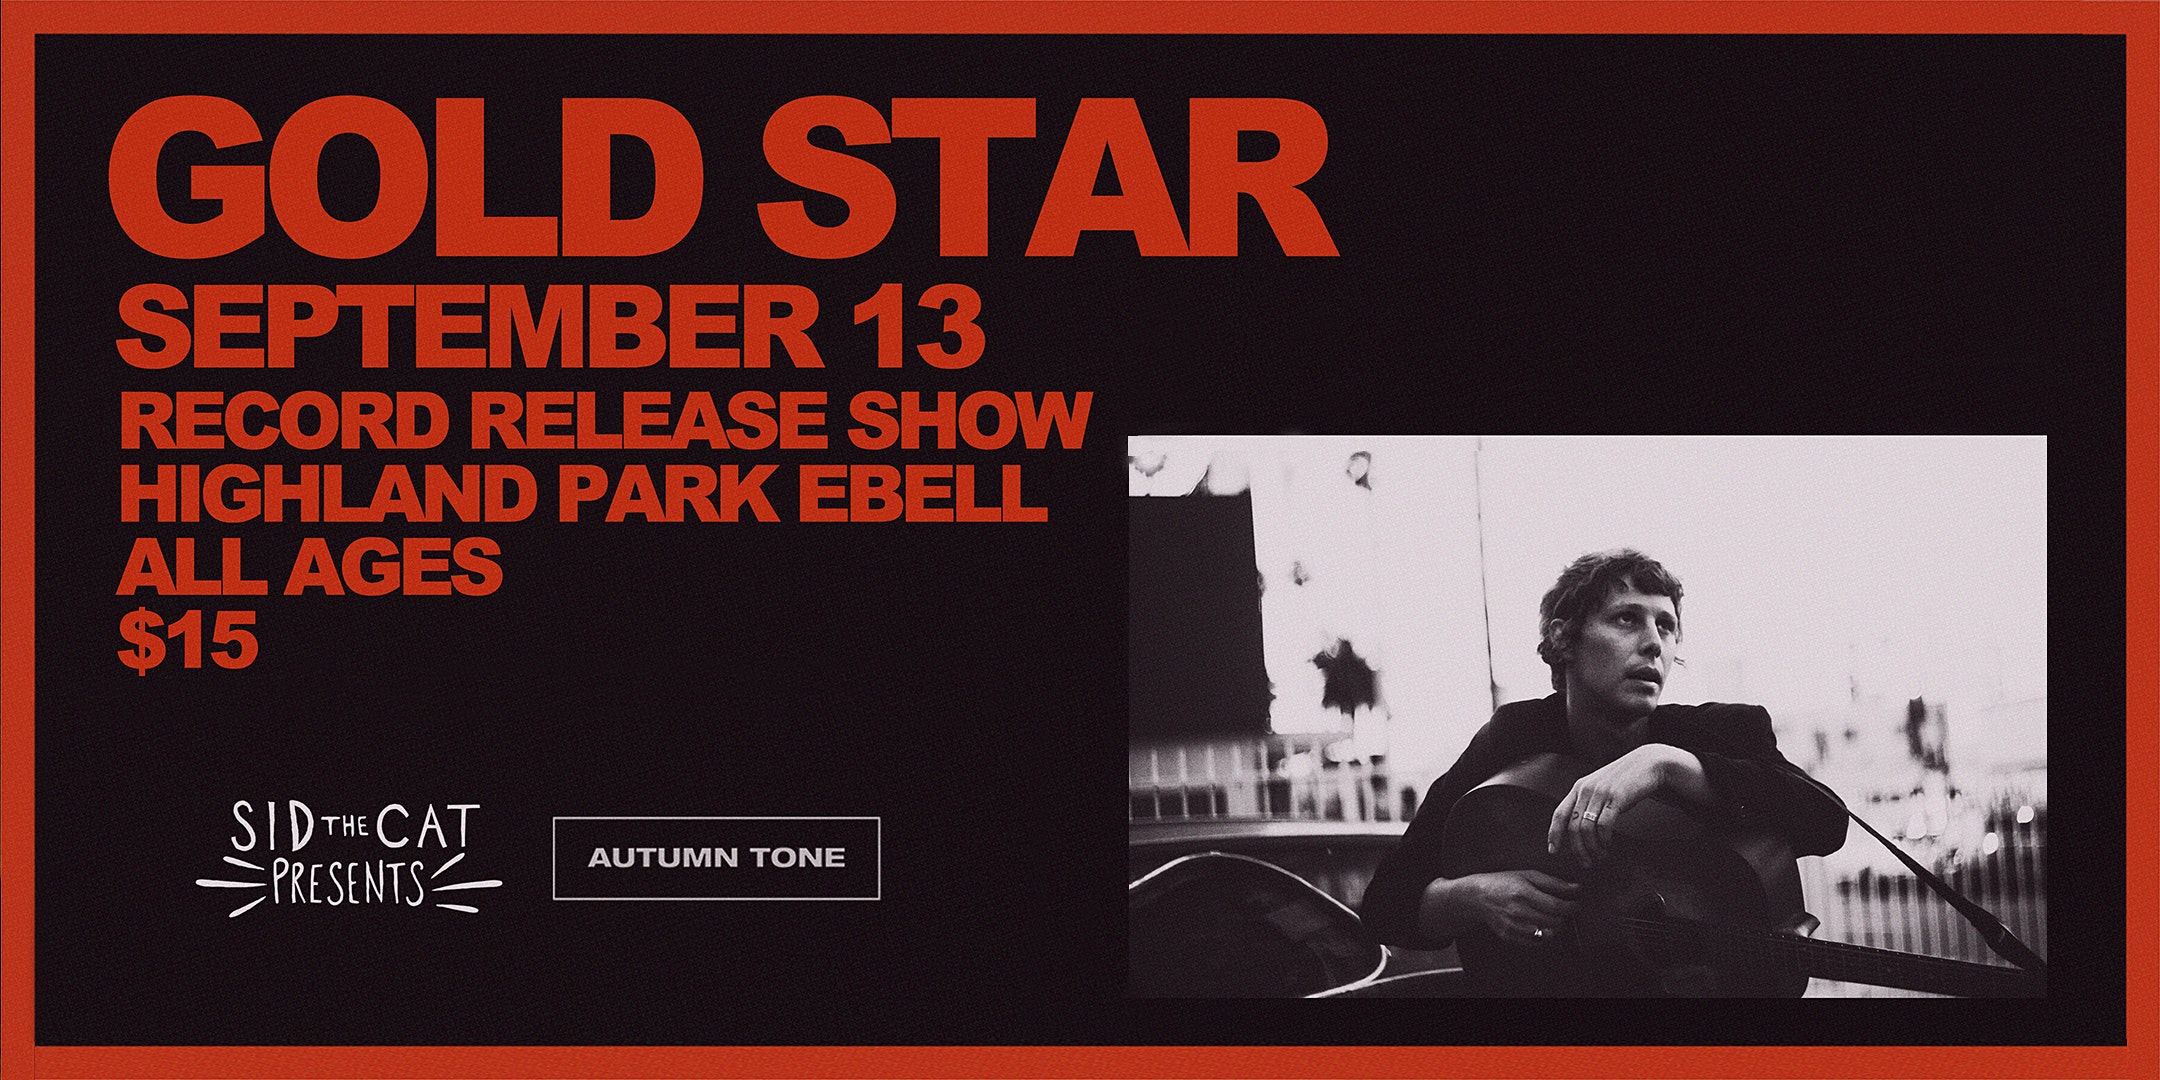 Gold Star - Record Release Show